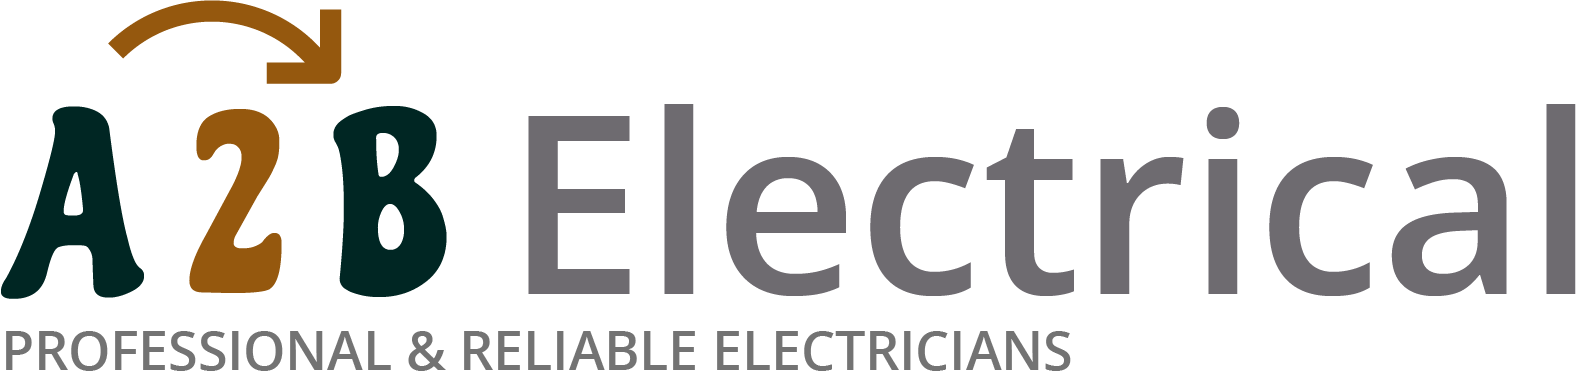 If you have electrical wiring problems in Clerkenwell, we can provide an electrician to have a look for you.